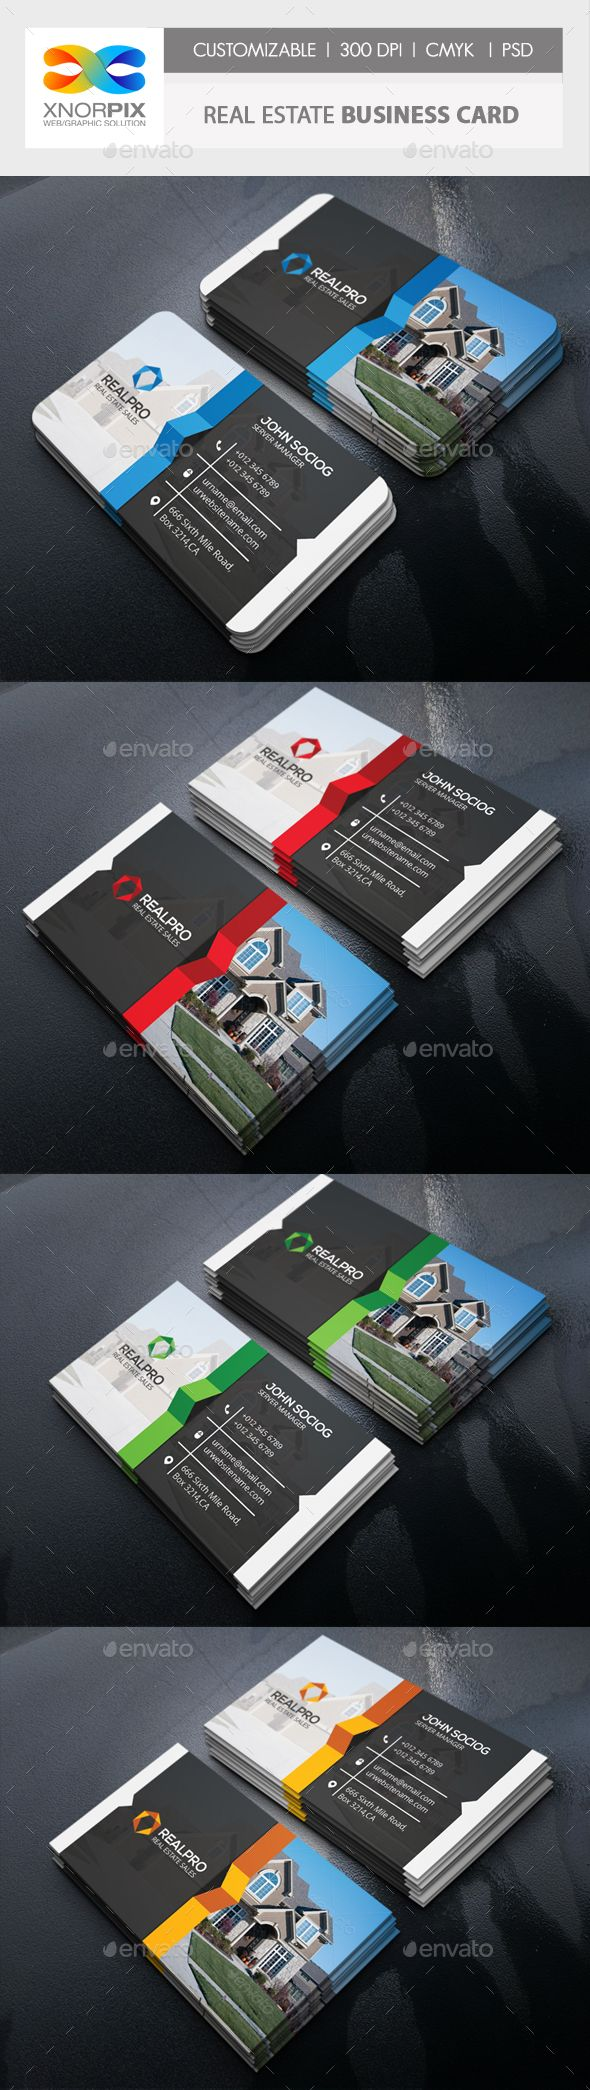 2207 best images on pinterest business cards real estate business card real estate business cardscreative magicingreecefo Choice Image